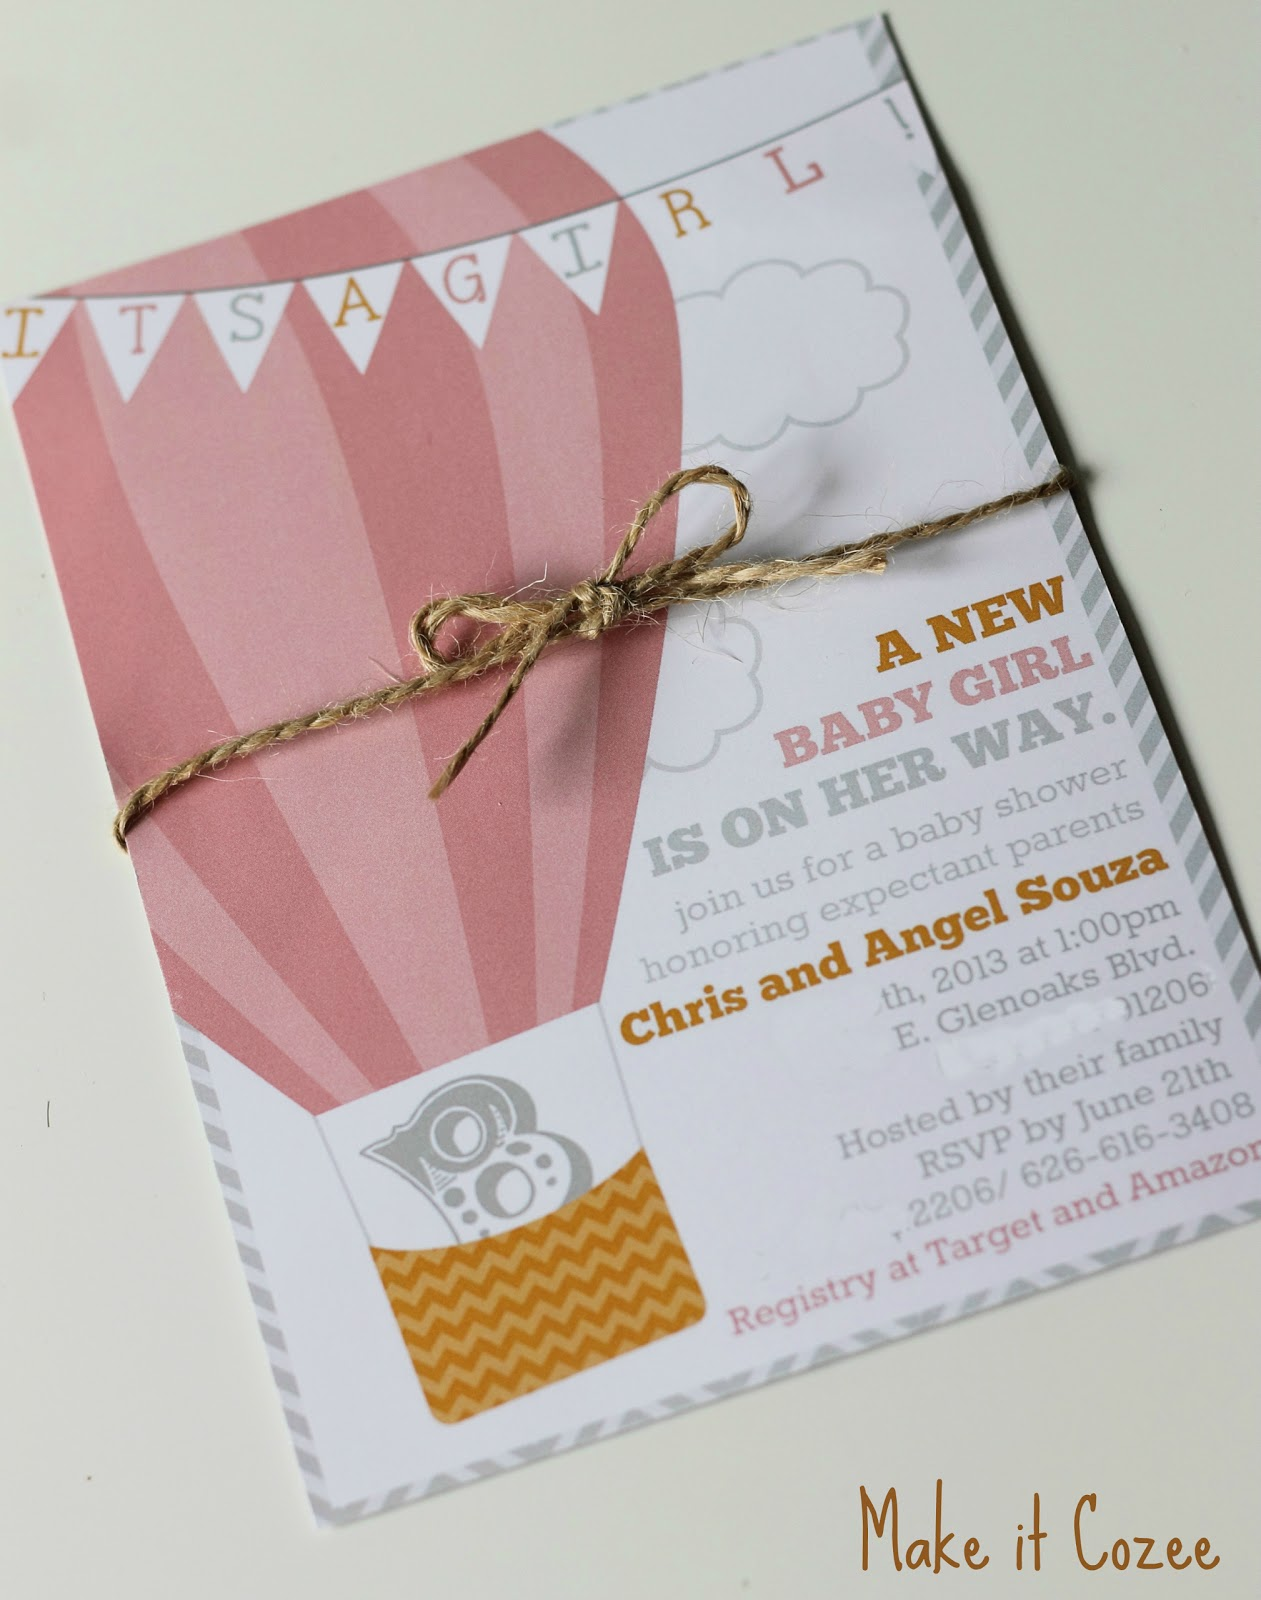 Make it Cozee Hot Air Balloon Baby Shower Invitations